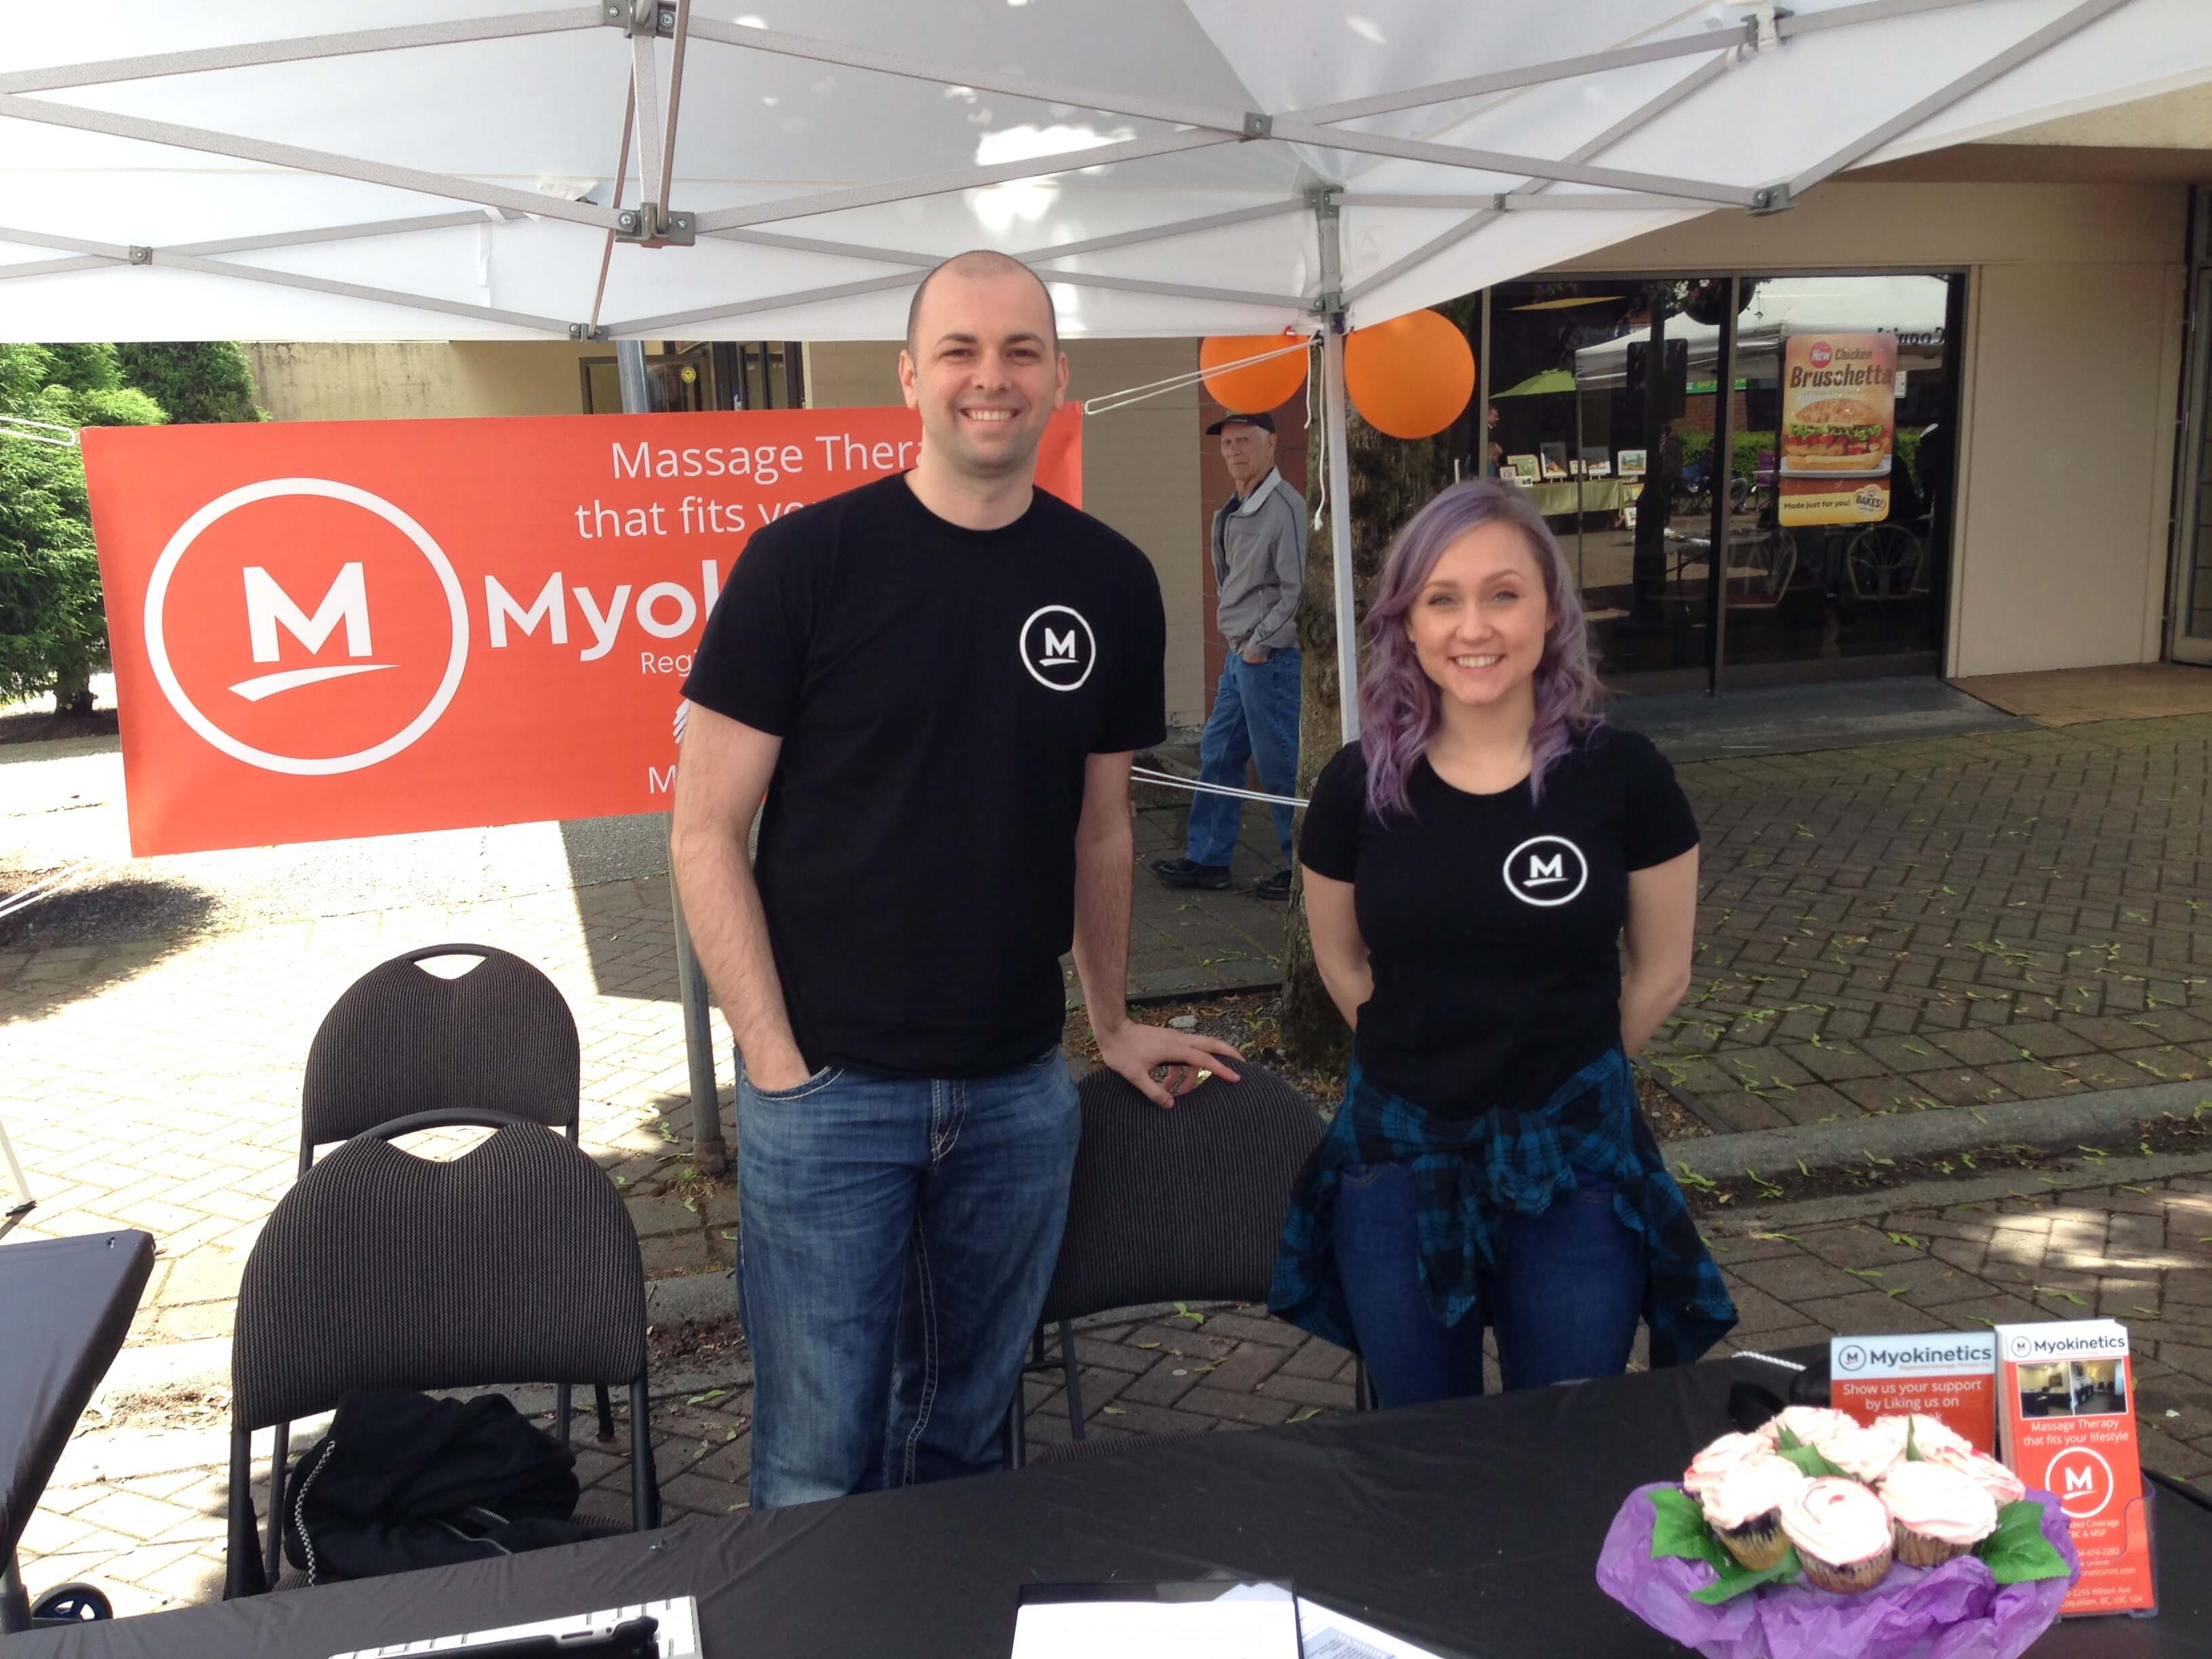 Krys dybowski, rmt and Tess Halldorson, RMT at polish days in port coquitlam